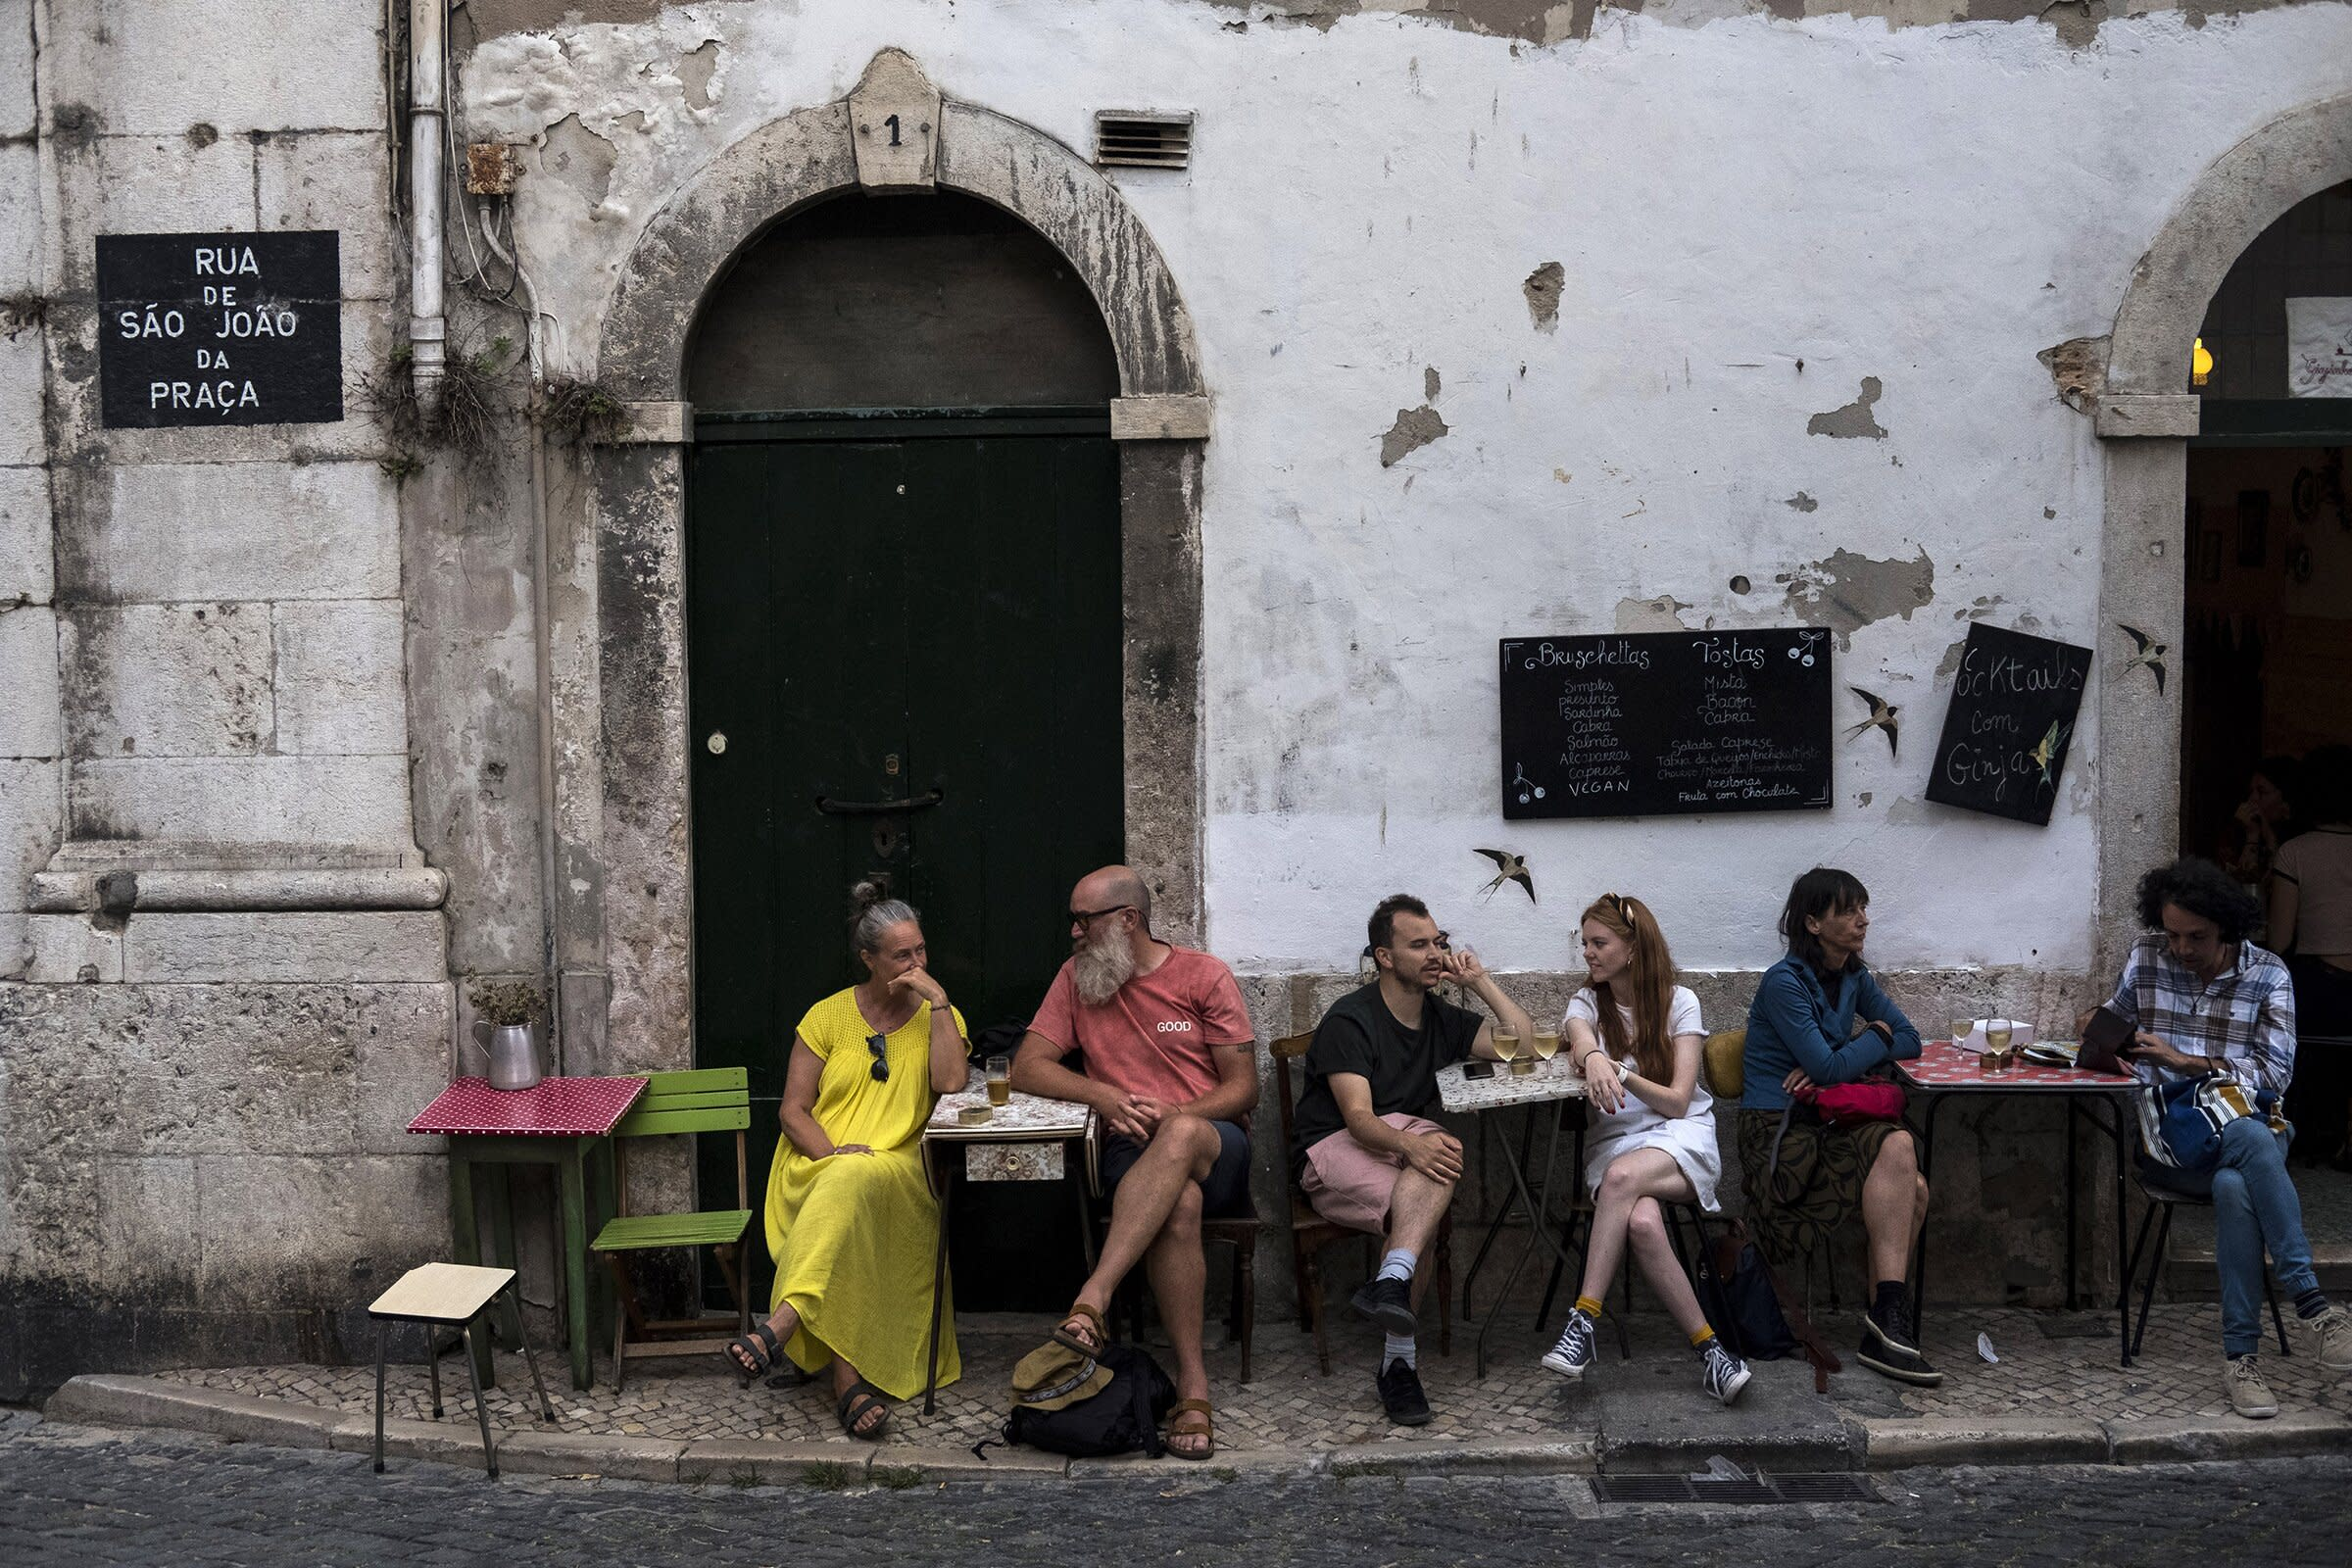 Europe's City Centers Pushed Out Residents for Tourists. Could the Coronavirus Reverse the Trend?